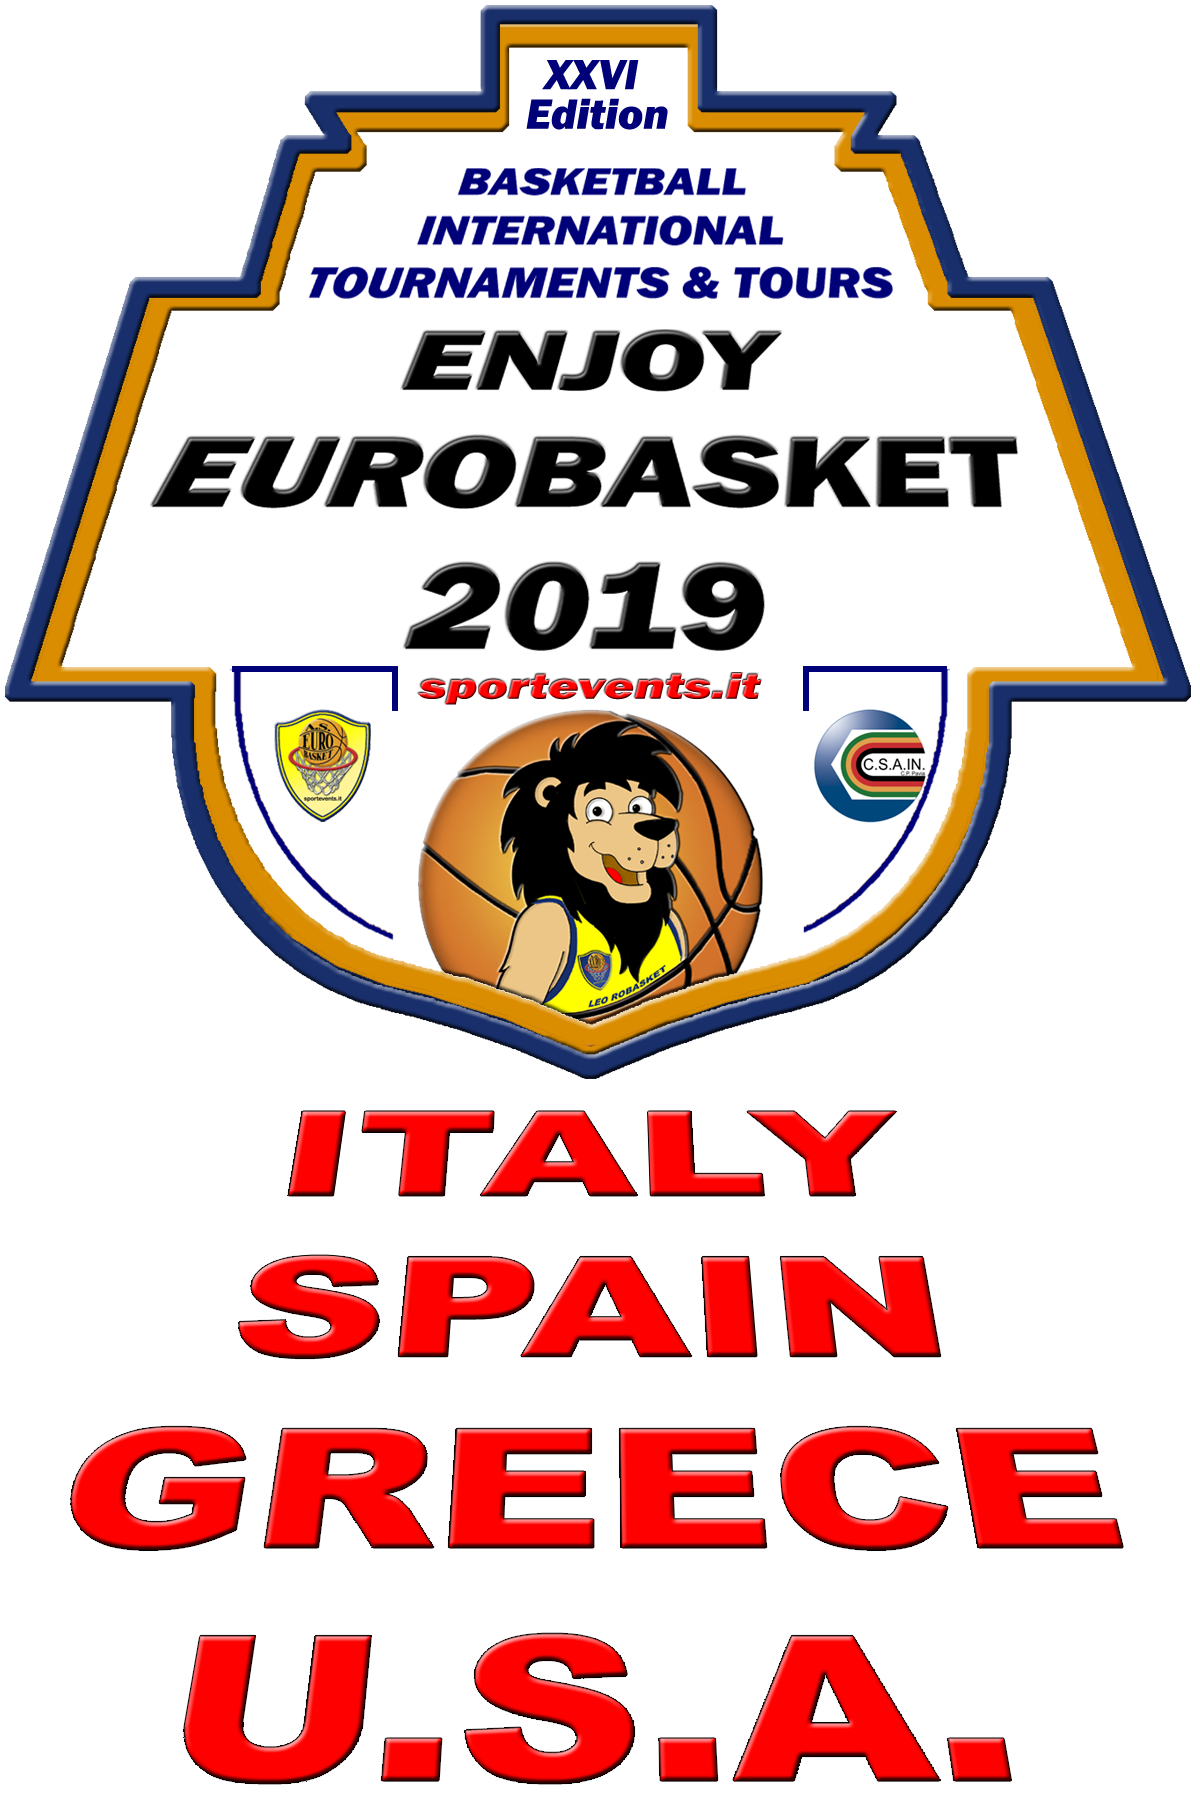 ENJOY EUROBASKET 2019 - XXVI Edition